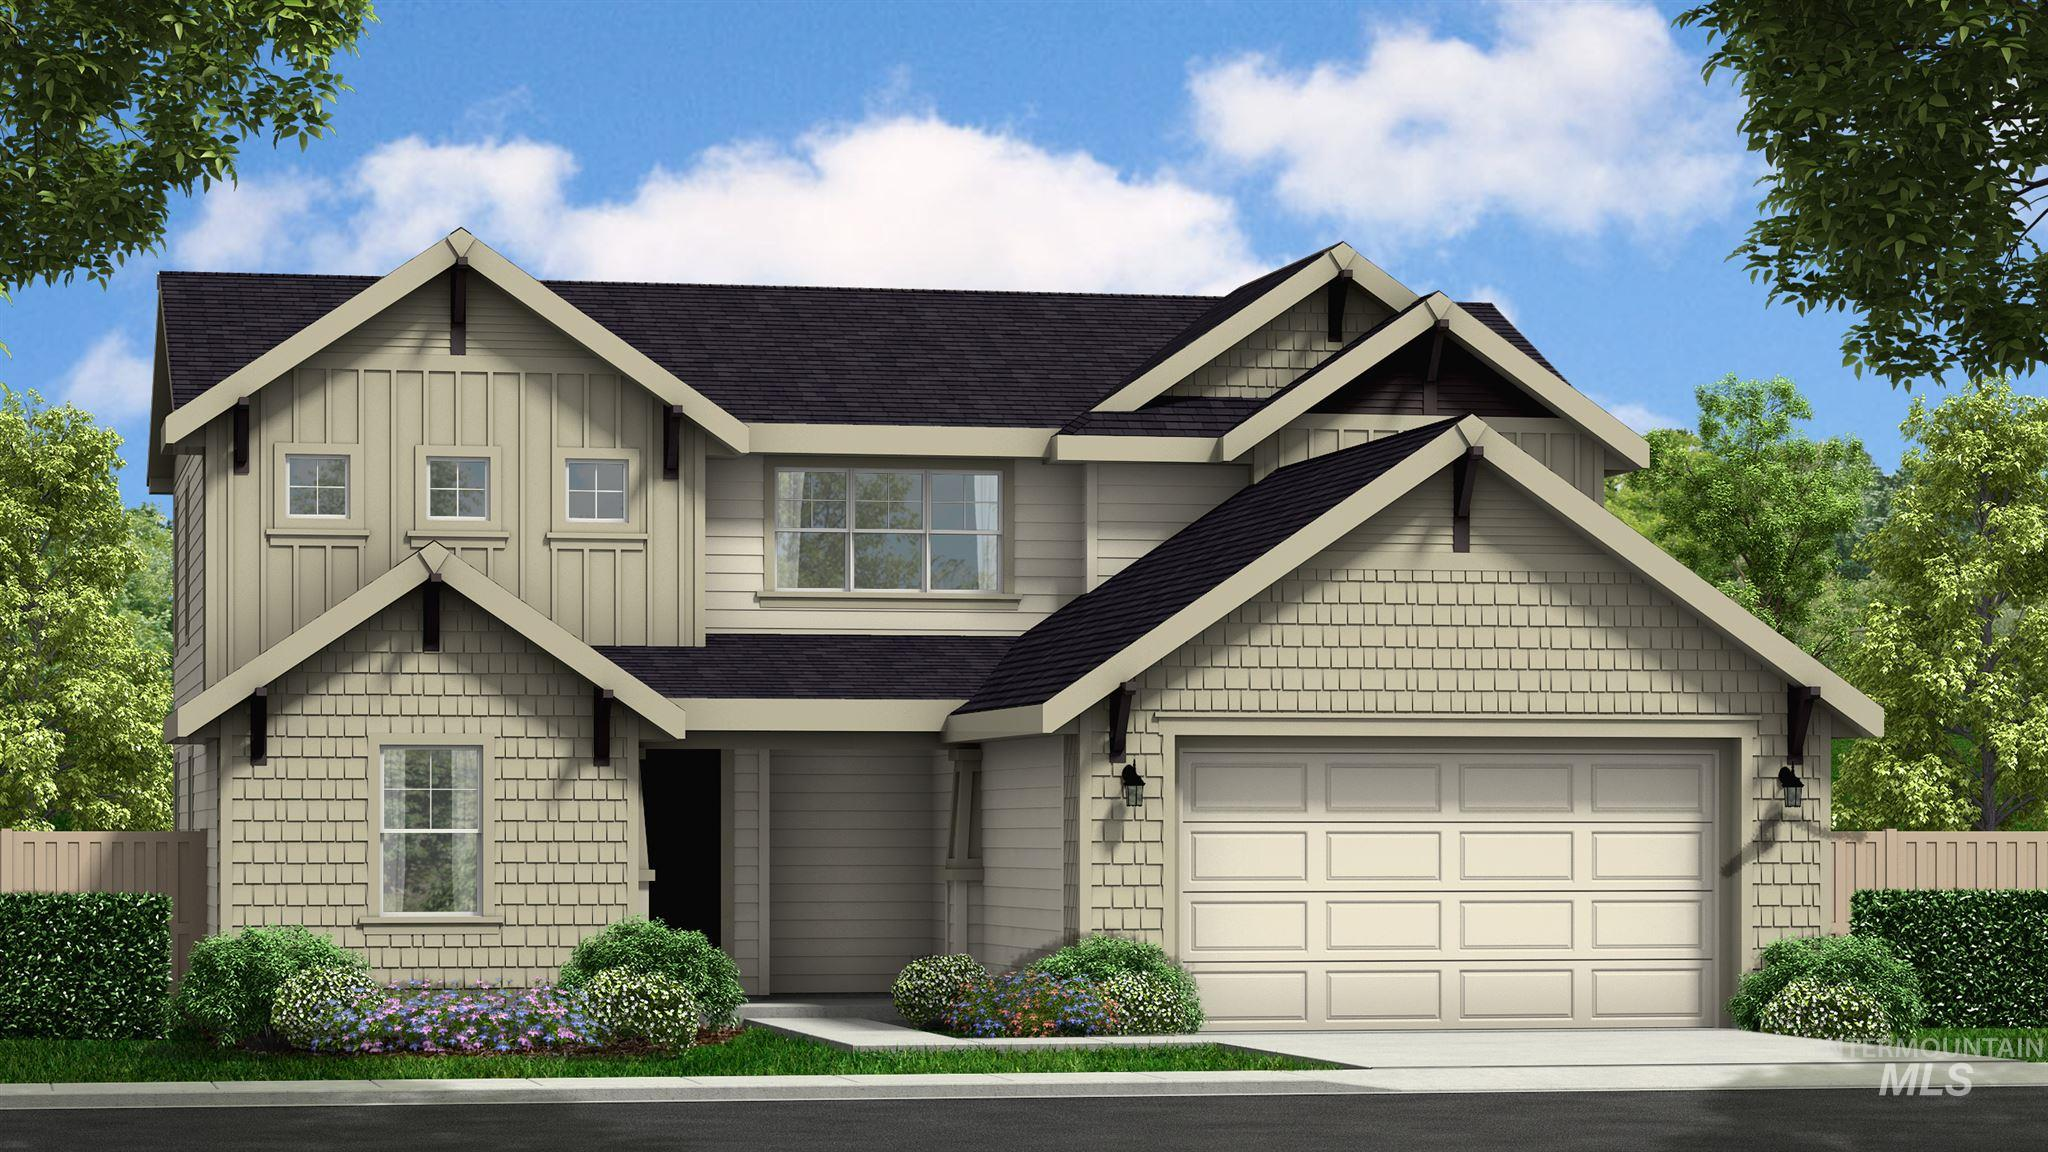 Photo for 3853 E Collingwood St., Meridian, ID 83642 (MLS # 98780789)